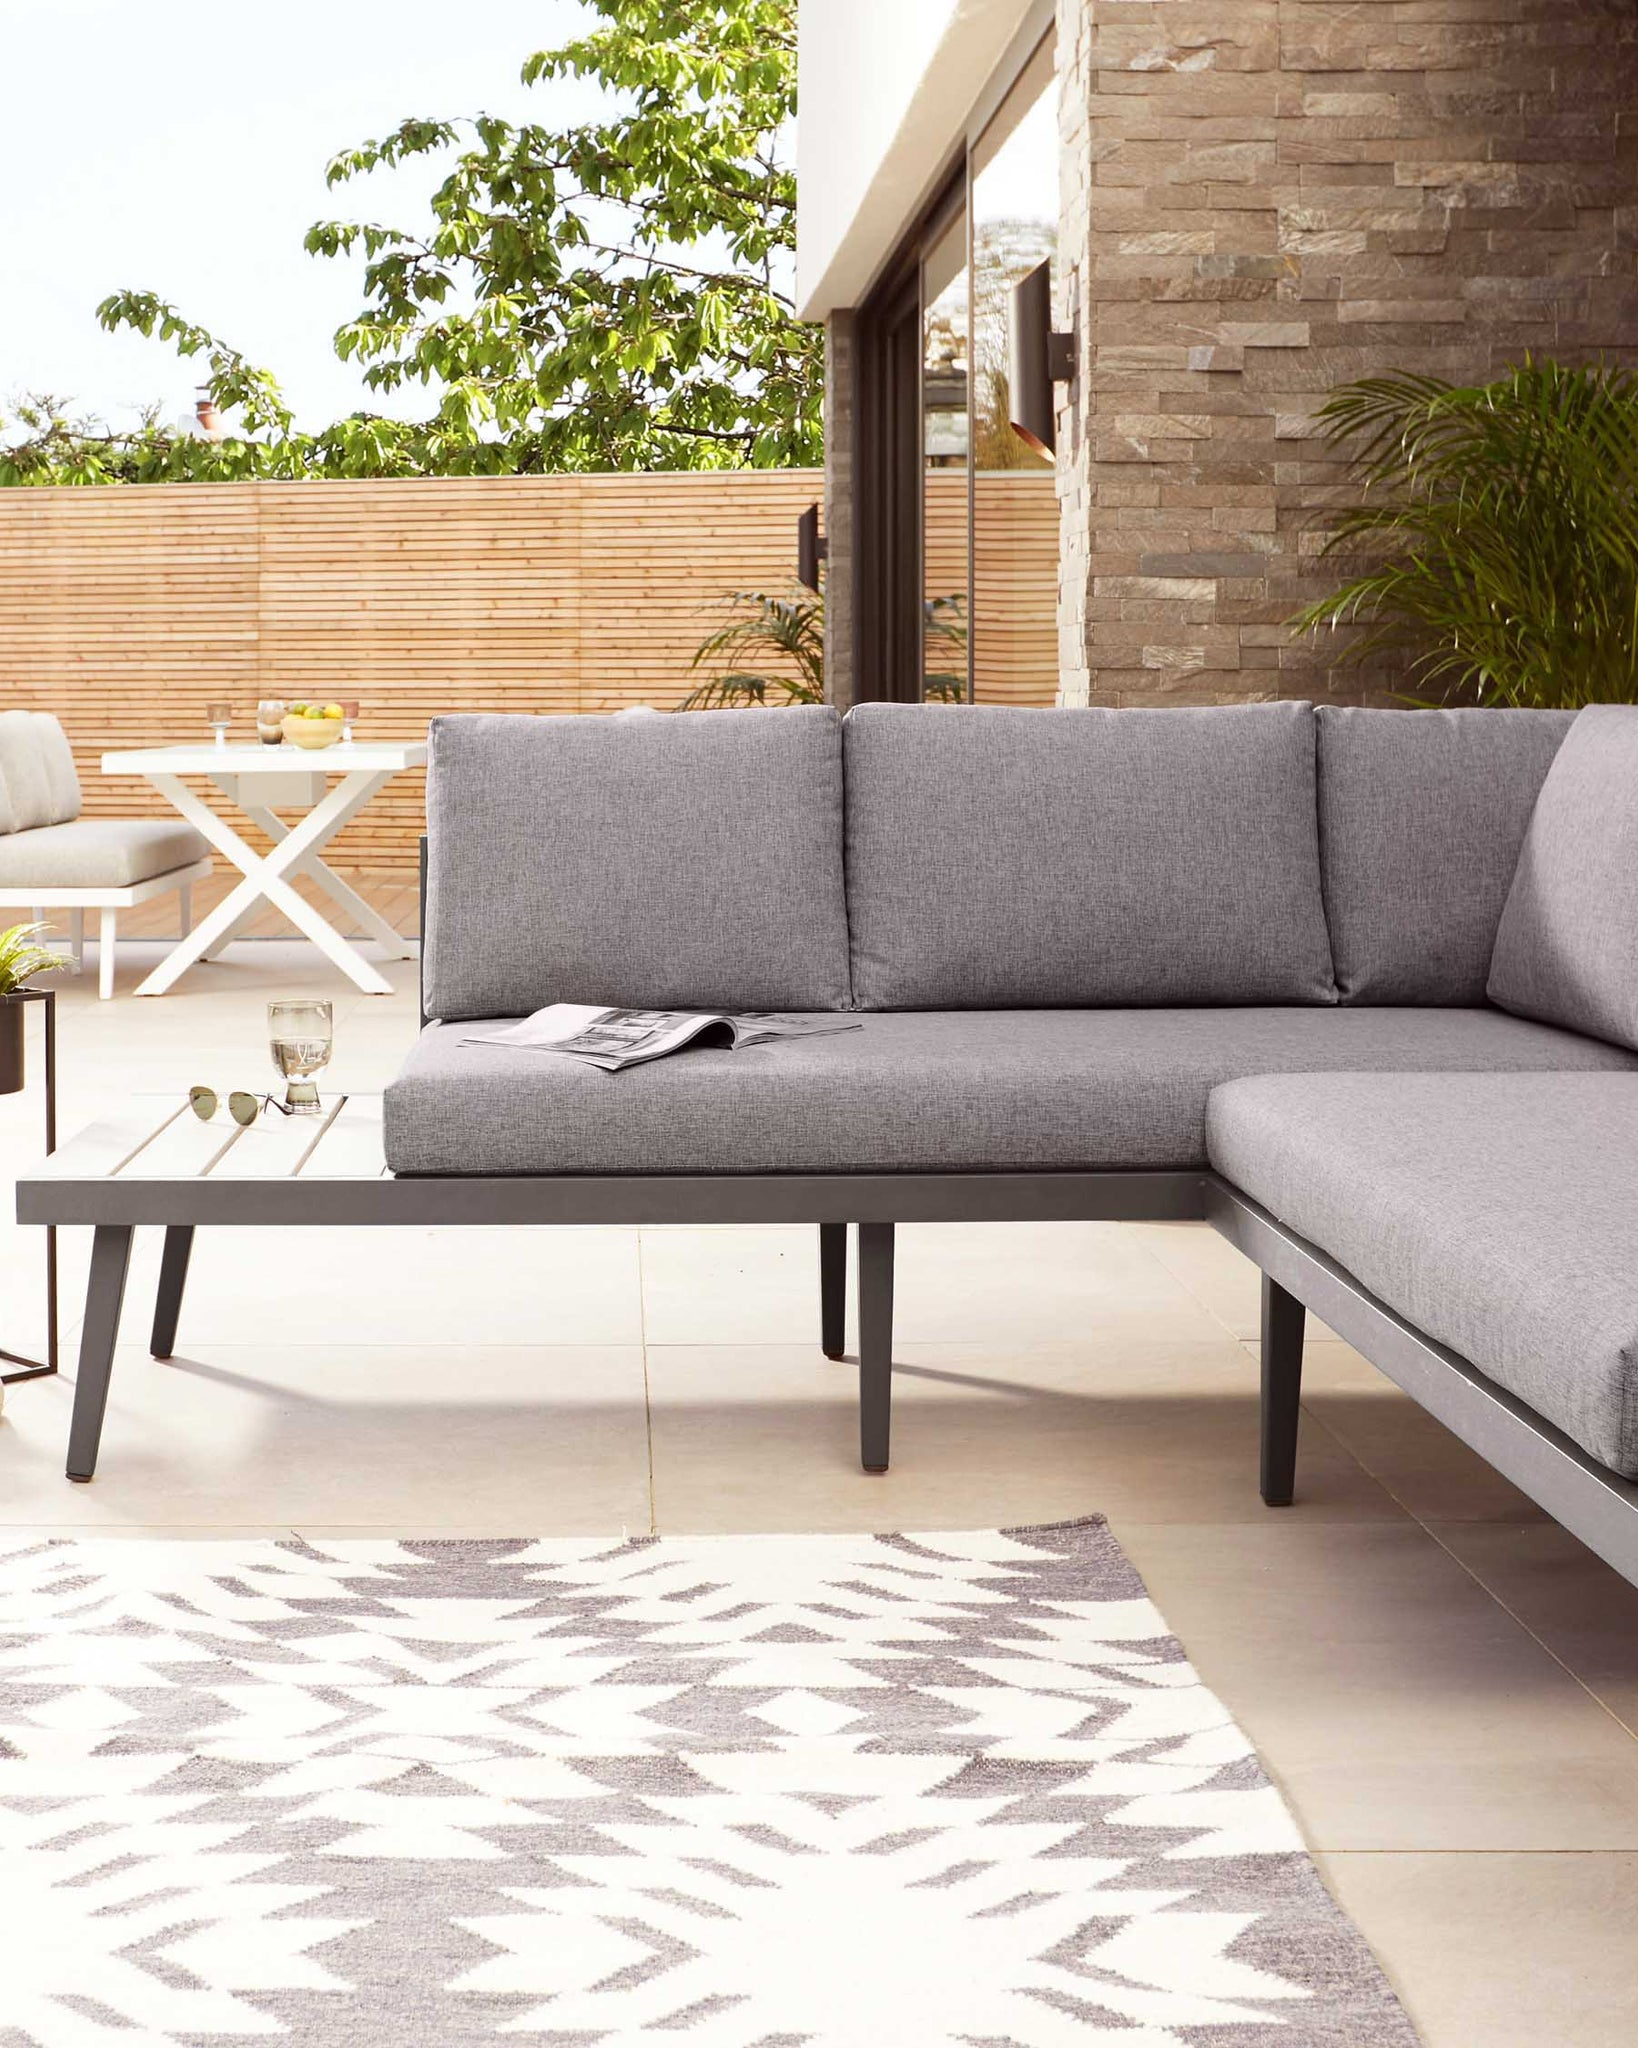 Palermo Grey Garden Bench Lounge Set